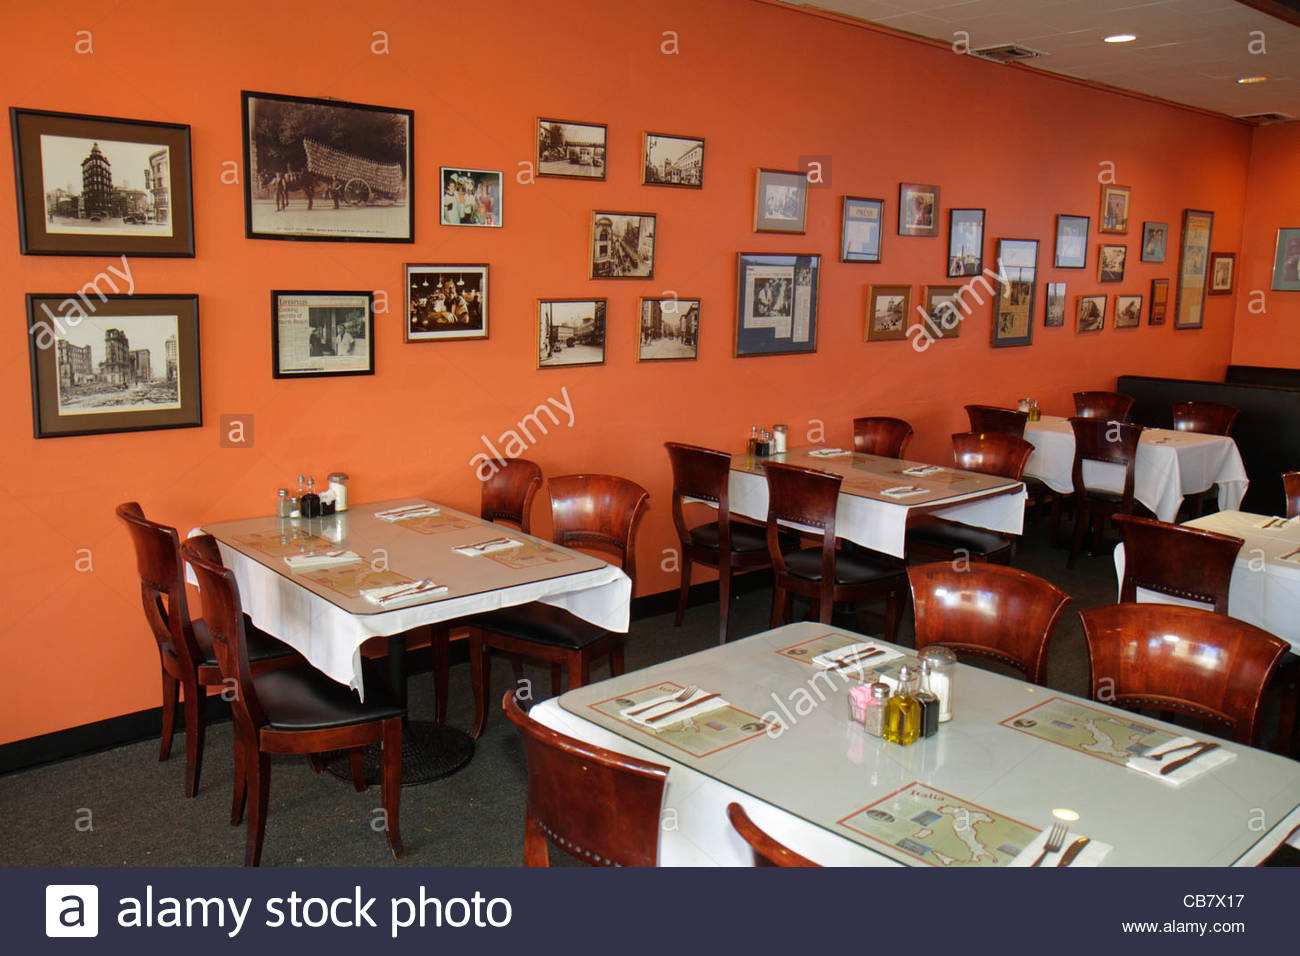 San Francisco California Market Street Little Joeu0027s Italian Restaurant  Empty Dining Table Place Setting Framed Photographs Decor